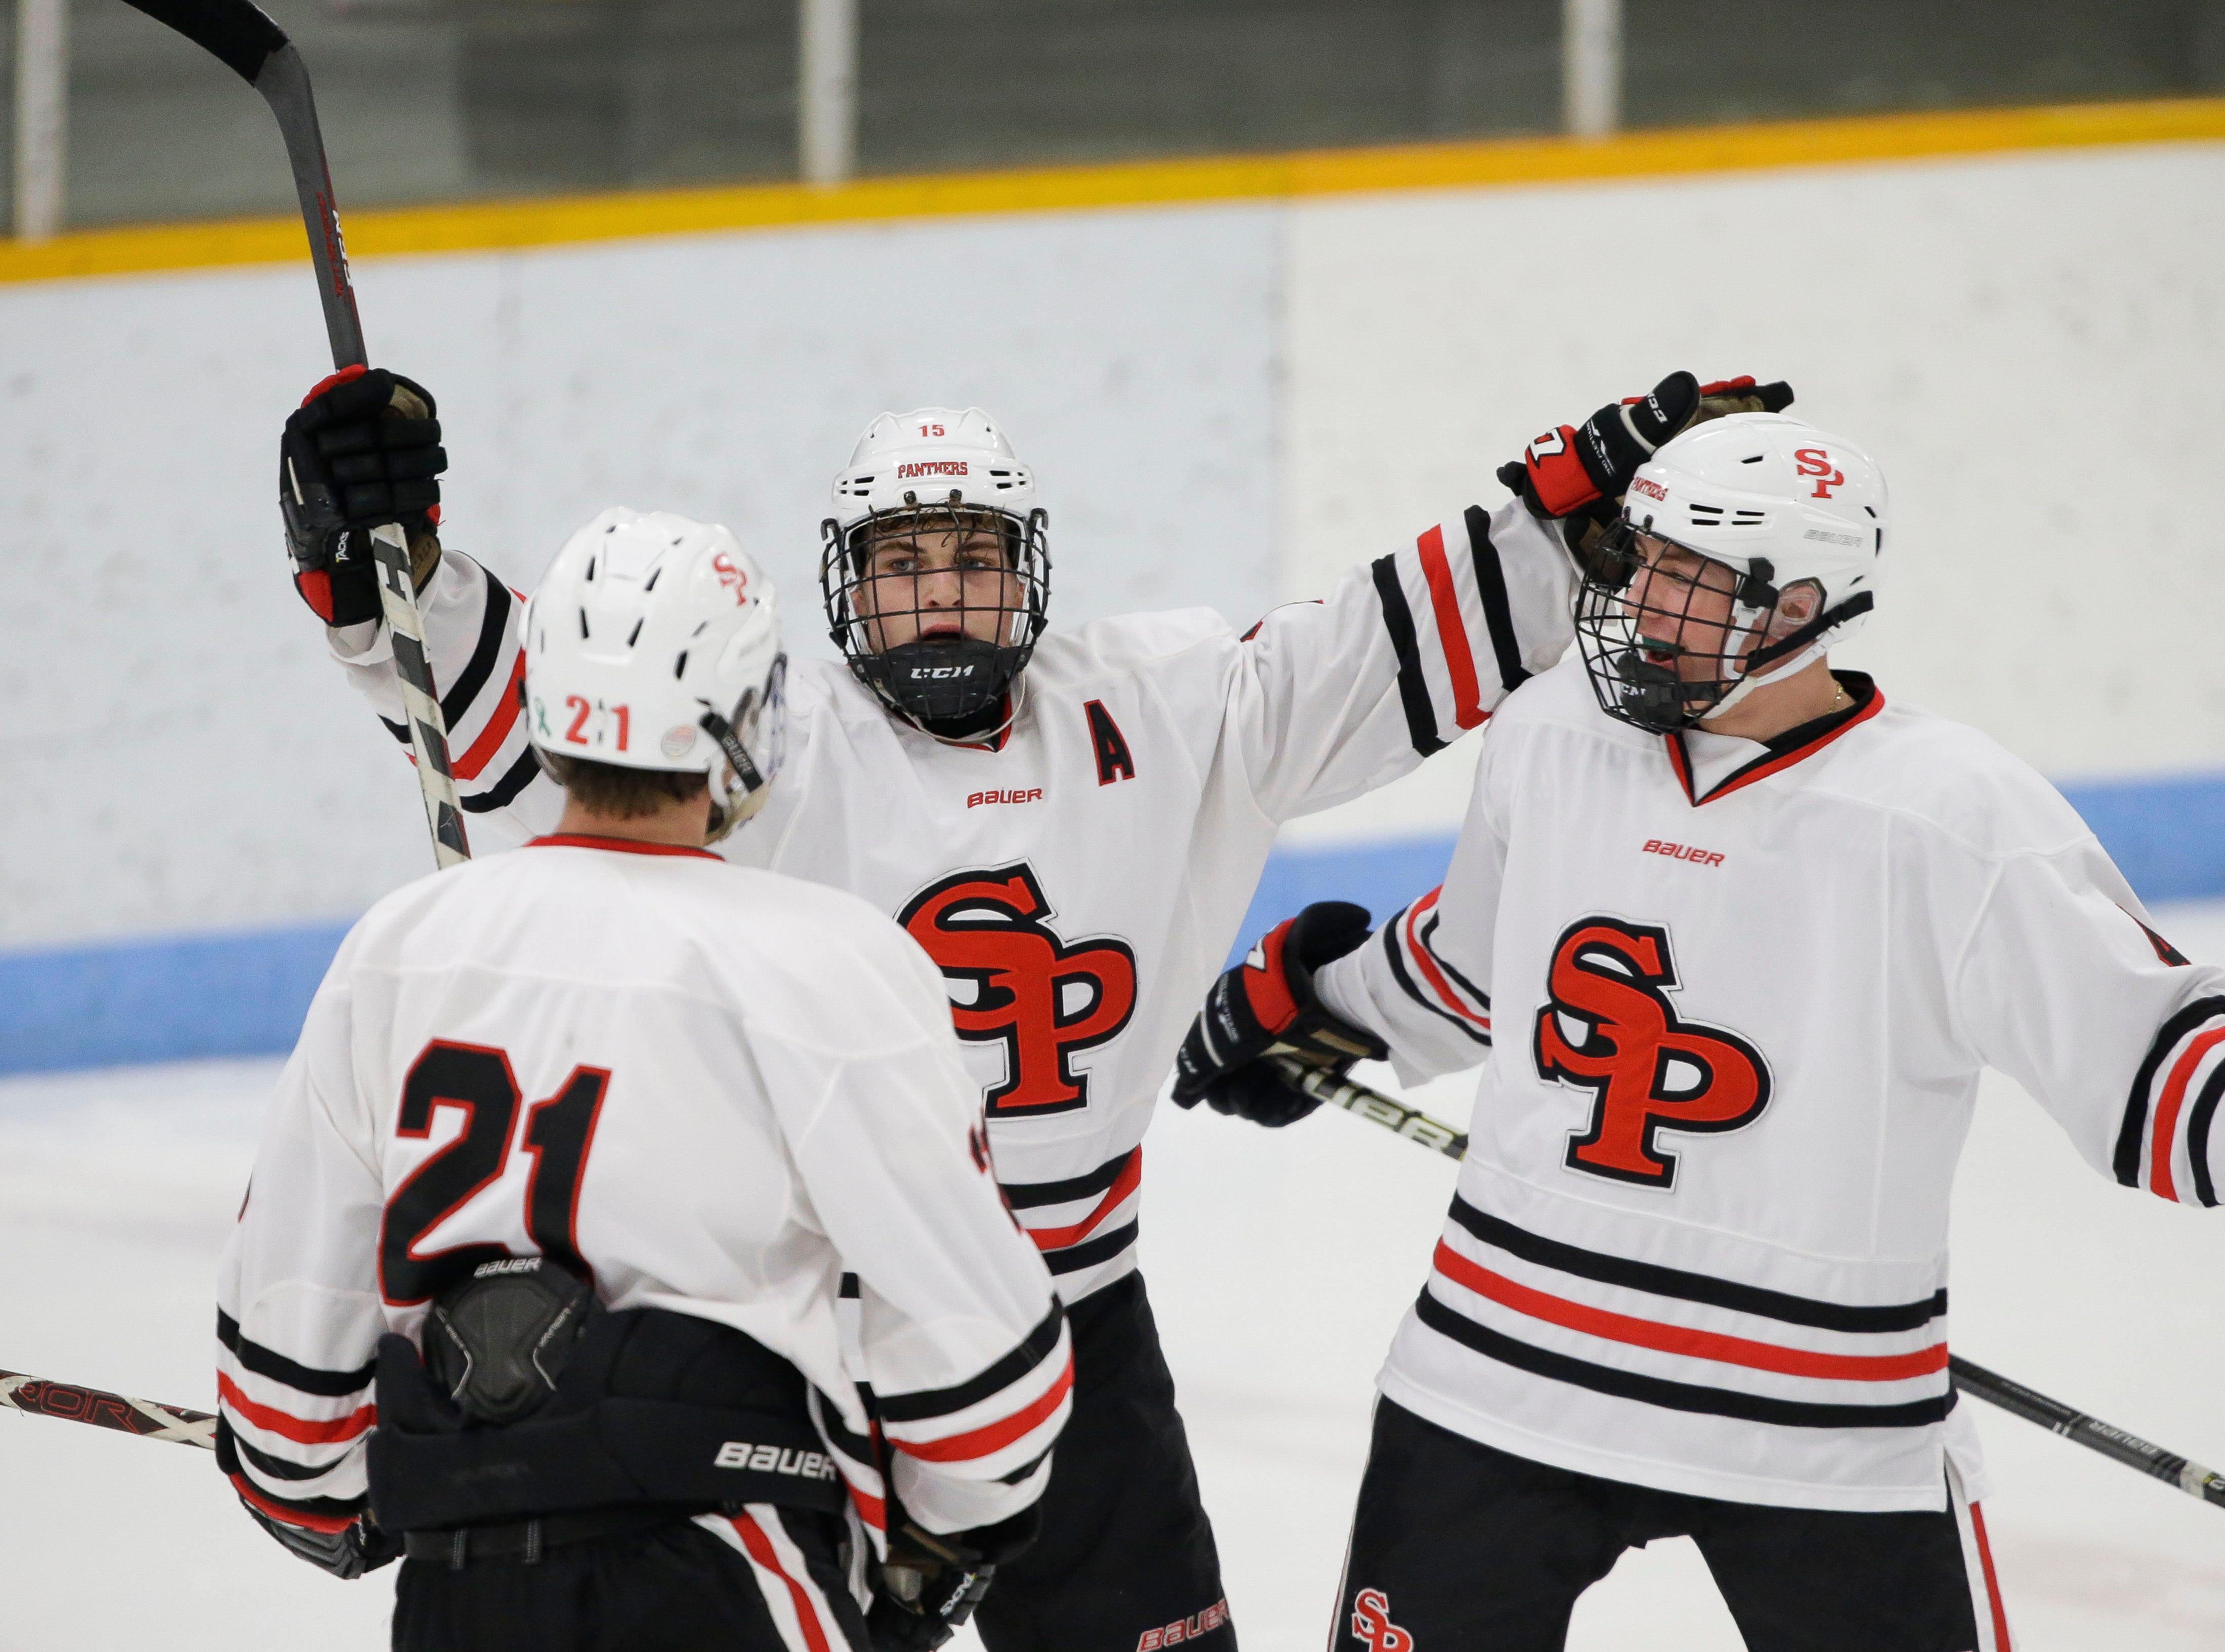 SPASH's Dayne Hoyord (15) celebrates after scoring a goal against Verona on Saturday, January 26, 2019, at K.B. Willett Ice Arena in Stevens Point, Wis. Tork Mason/USA TODAY NETWORK-Wisconsin